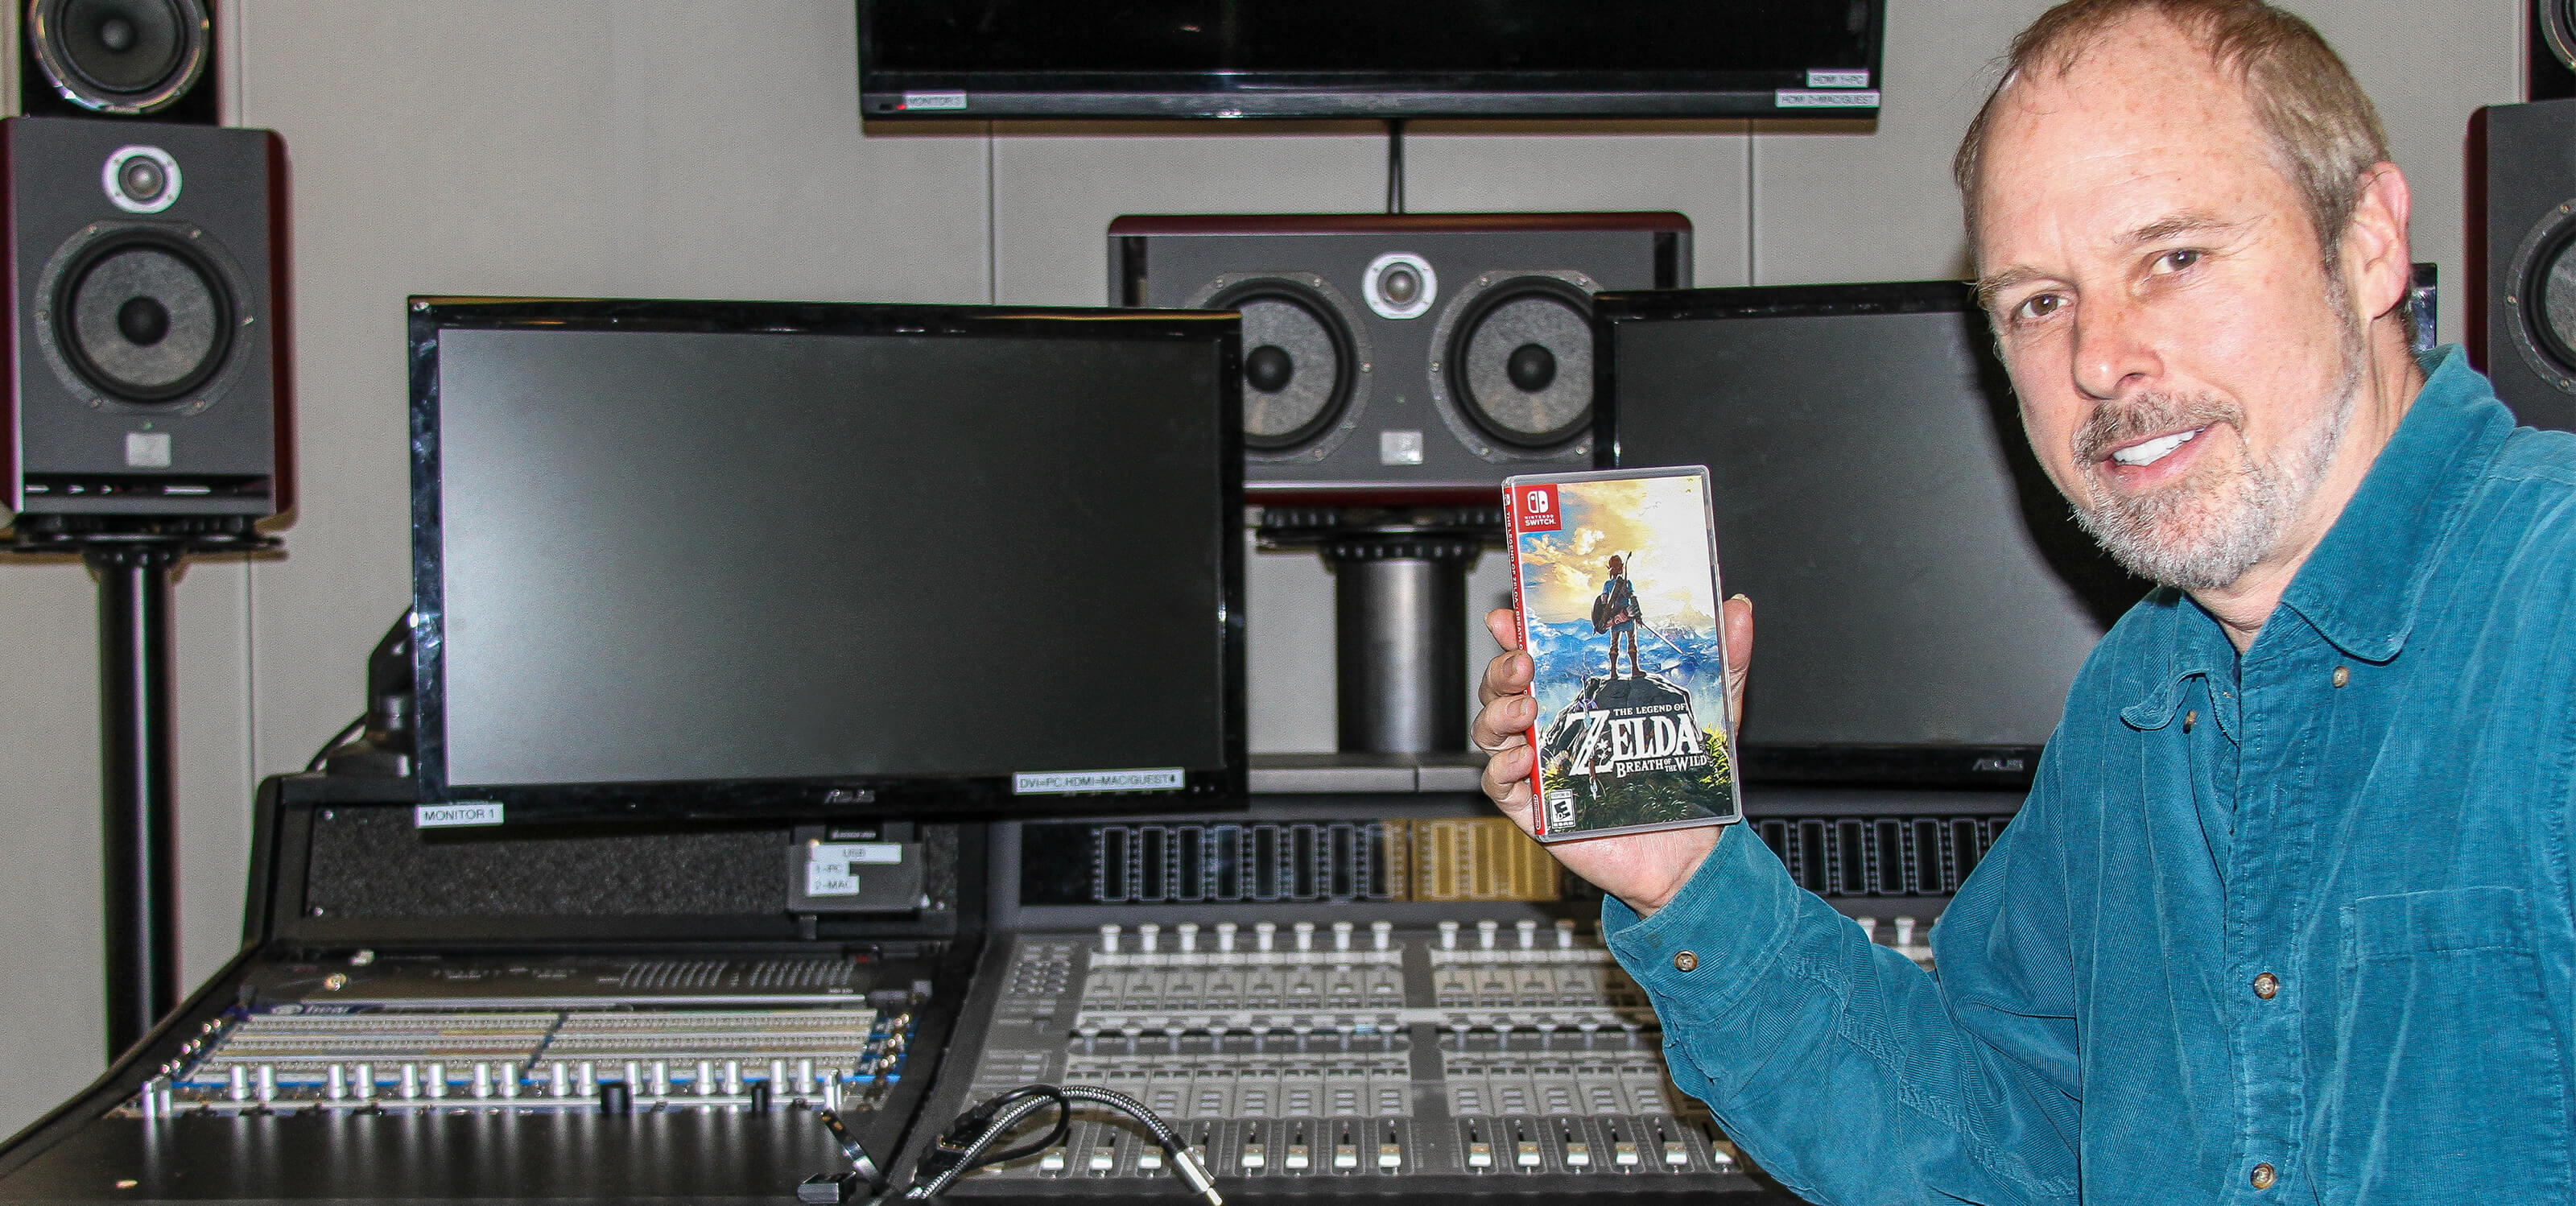 """Program director Lawrence Schwedler explains why the Zelda title is """"the apex of non-linear game audio"""" and how he teaches his students with it."""